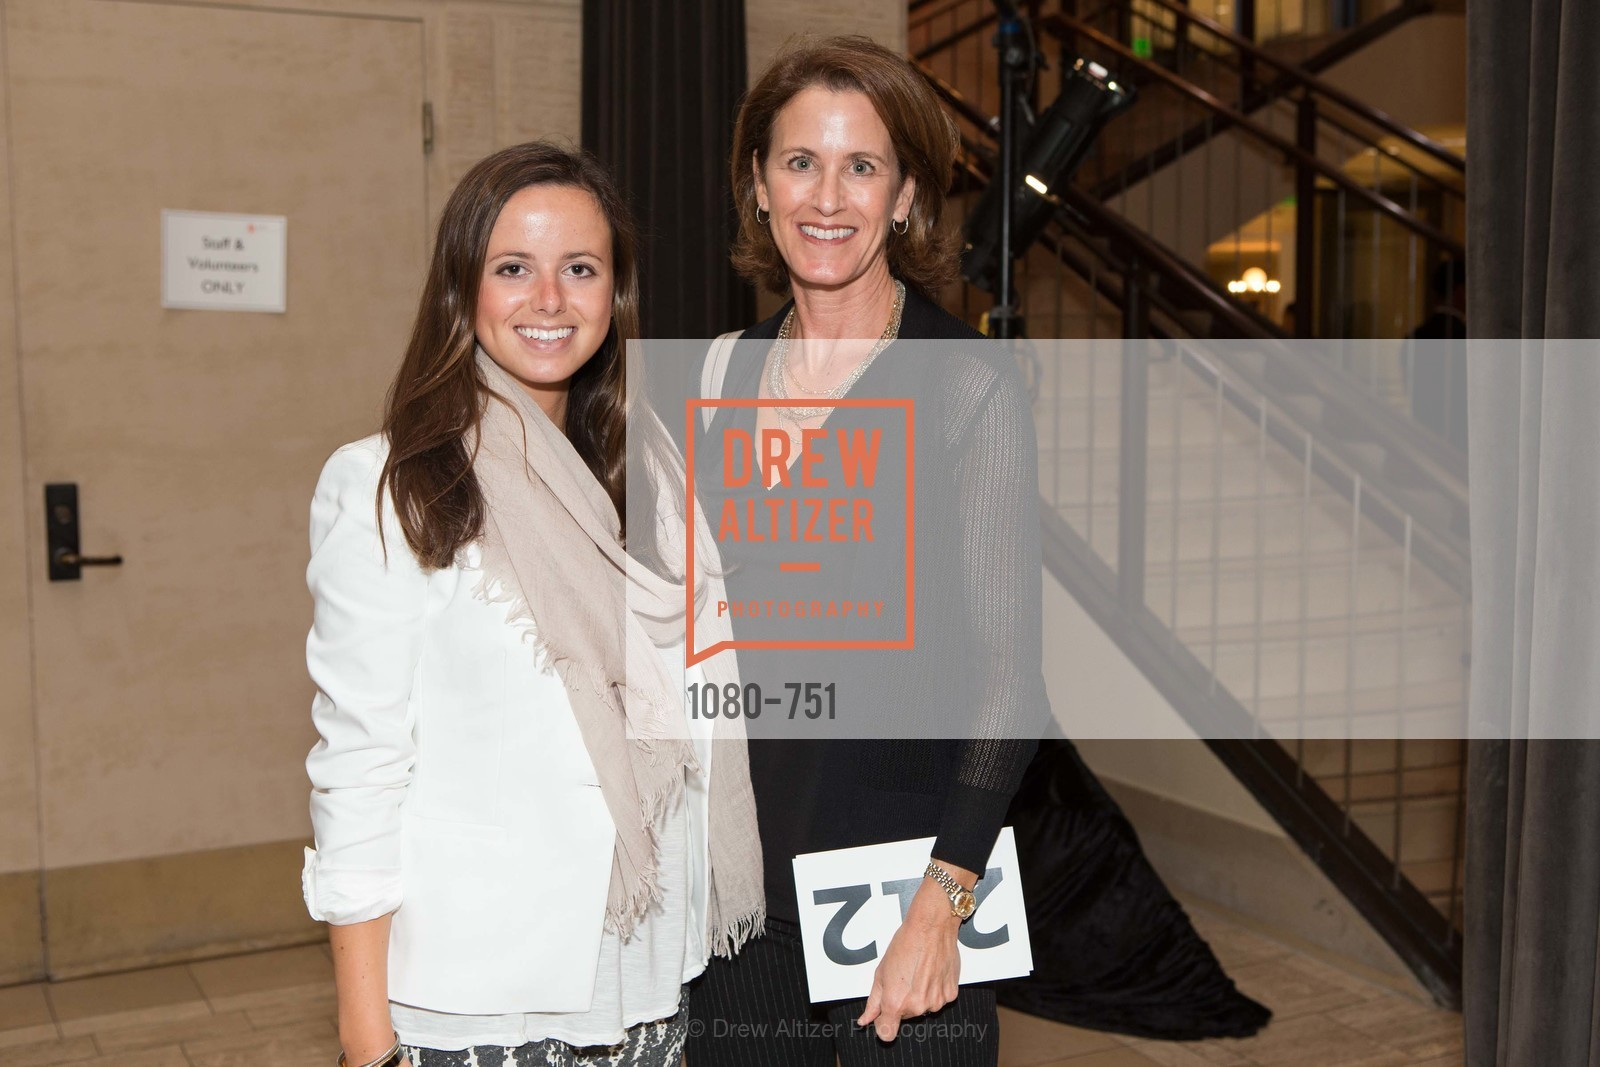 Avery Hale, Liz Hale, CENTER FOR ENVIRONMENTAL HEALTH (CEH) 2015 Gala, Bently Reserve, May 28th, 2015,Drew Altizer, Drew Altizer Photography, full-service agency, private events, San Francisco photographer, photographer california